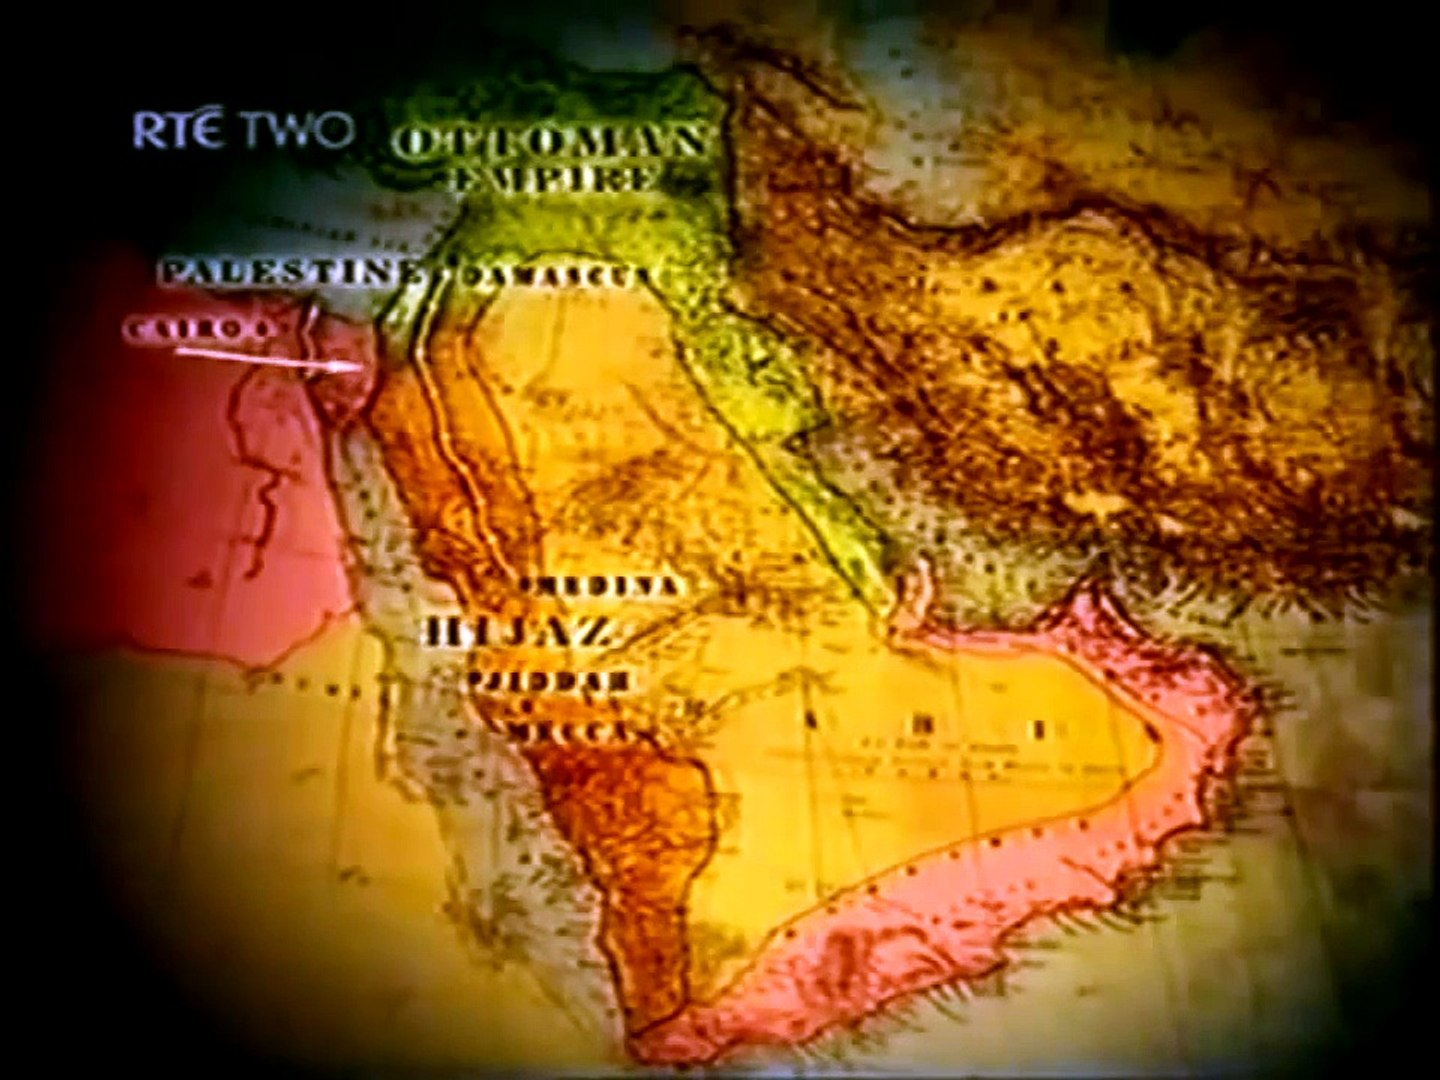 Amazing Documentary HD ★ The conflict in order to win in the Middle East ★ HD 2015